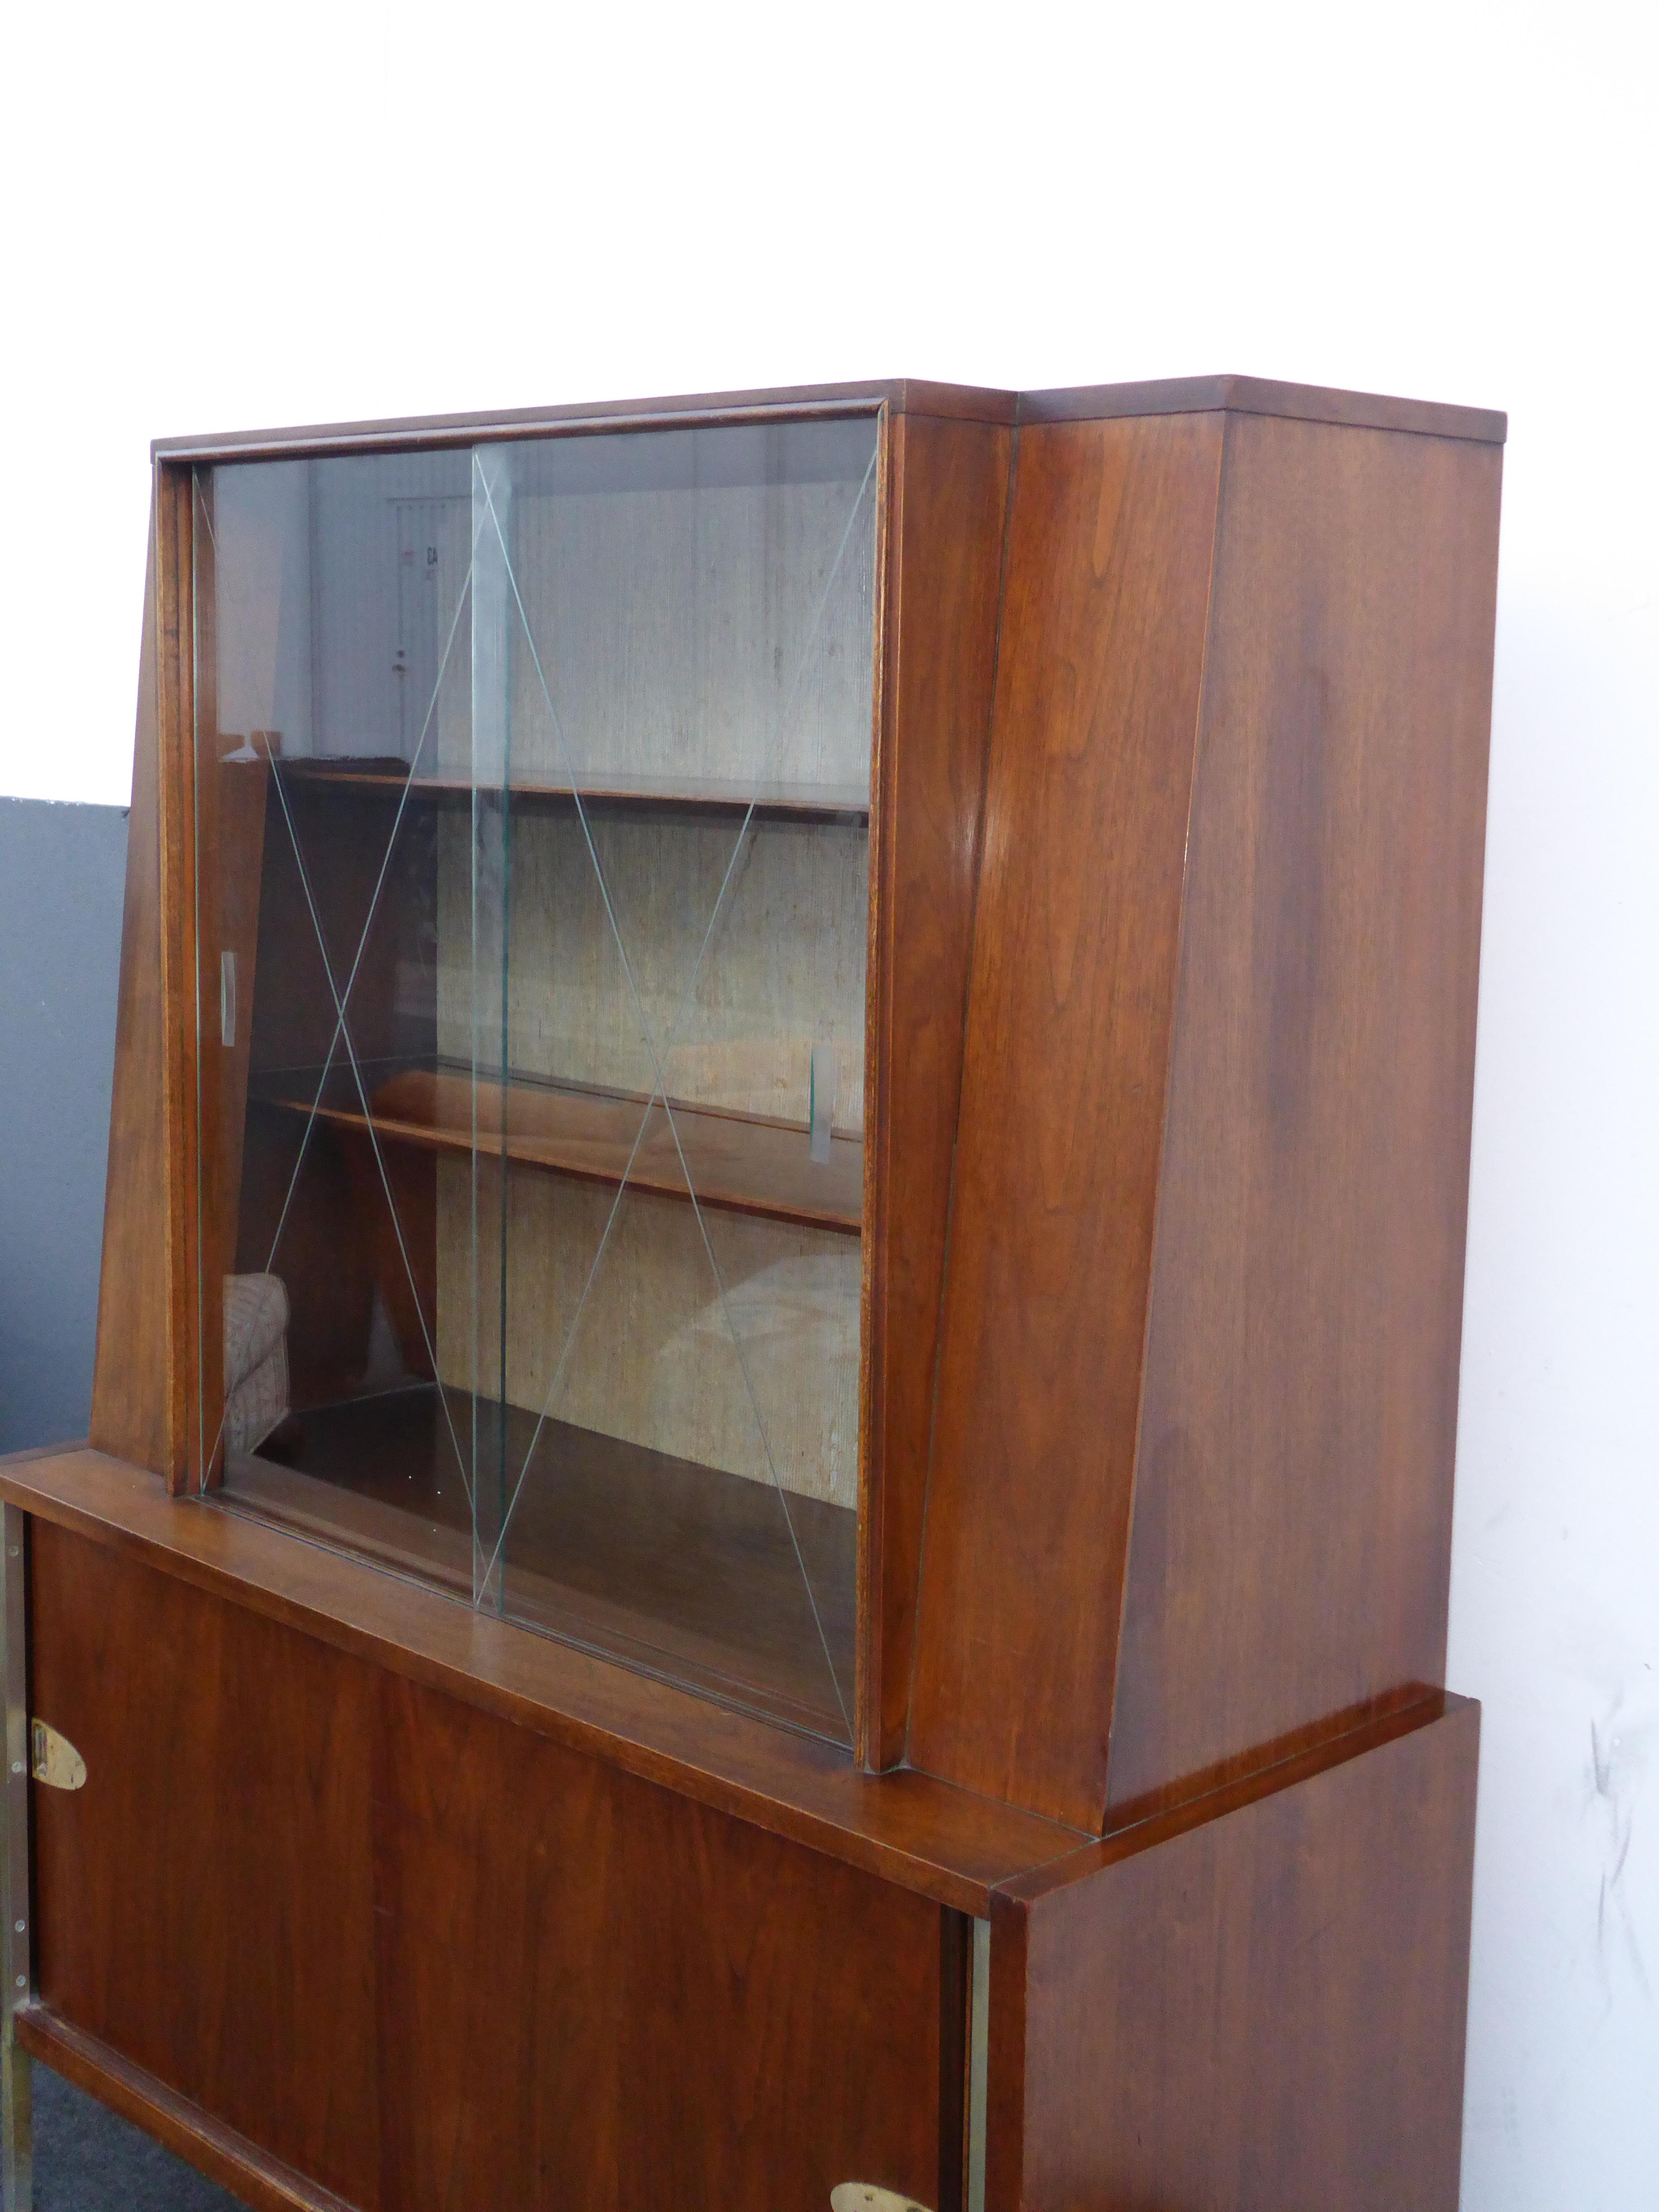 vintage mid century modern hutch display cabinet with etched glass doors by mengel image 6